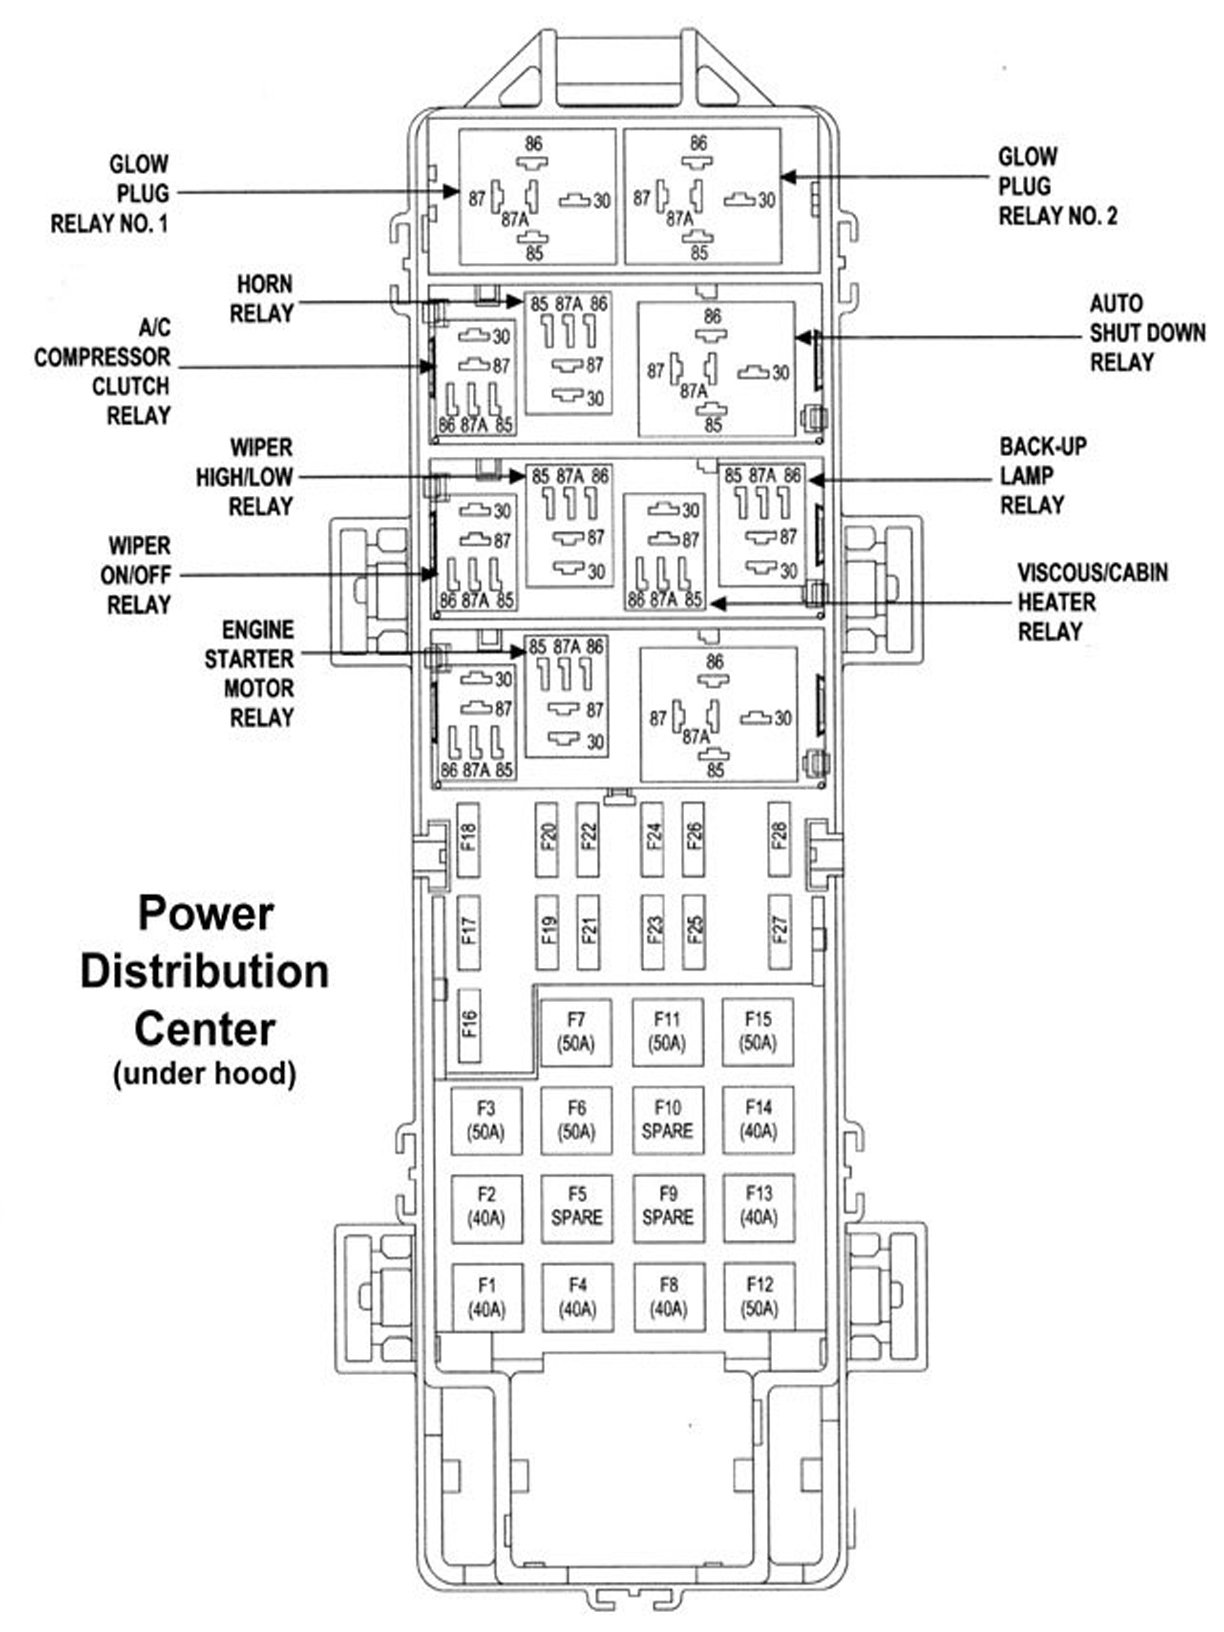 AAAAAAAAug 28 Fuse Box 04 91415 jeep grand cherokee wj 1999 to 2004 fuse box diagram cherokeeforum 2001 jeep grand cherokee fuse box diagram at panicattacktreatment.co